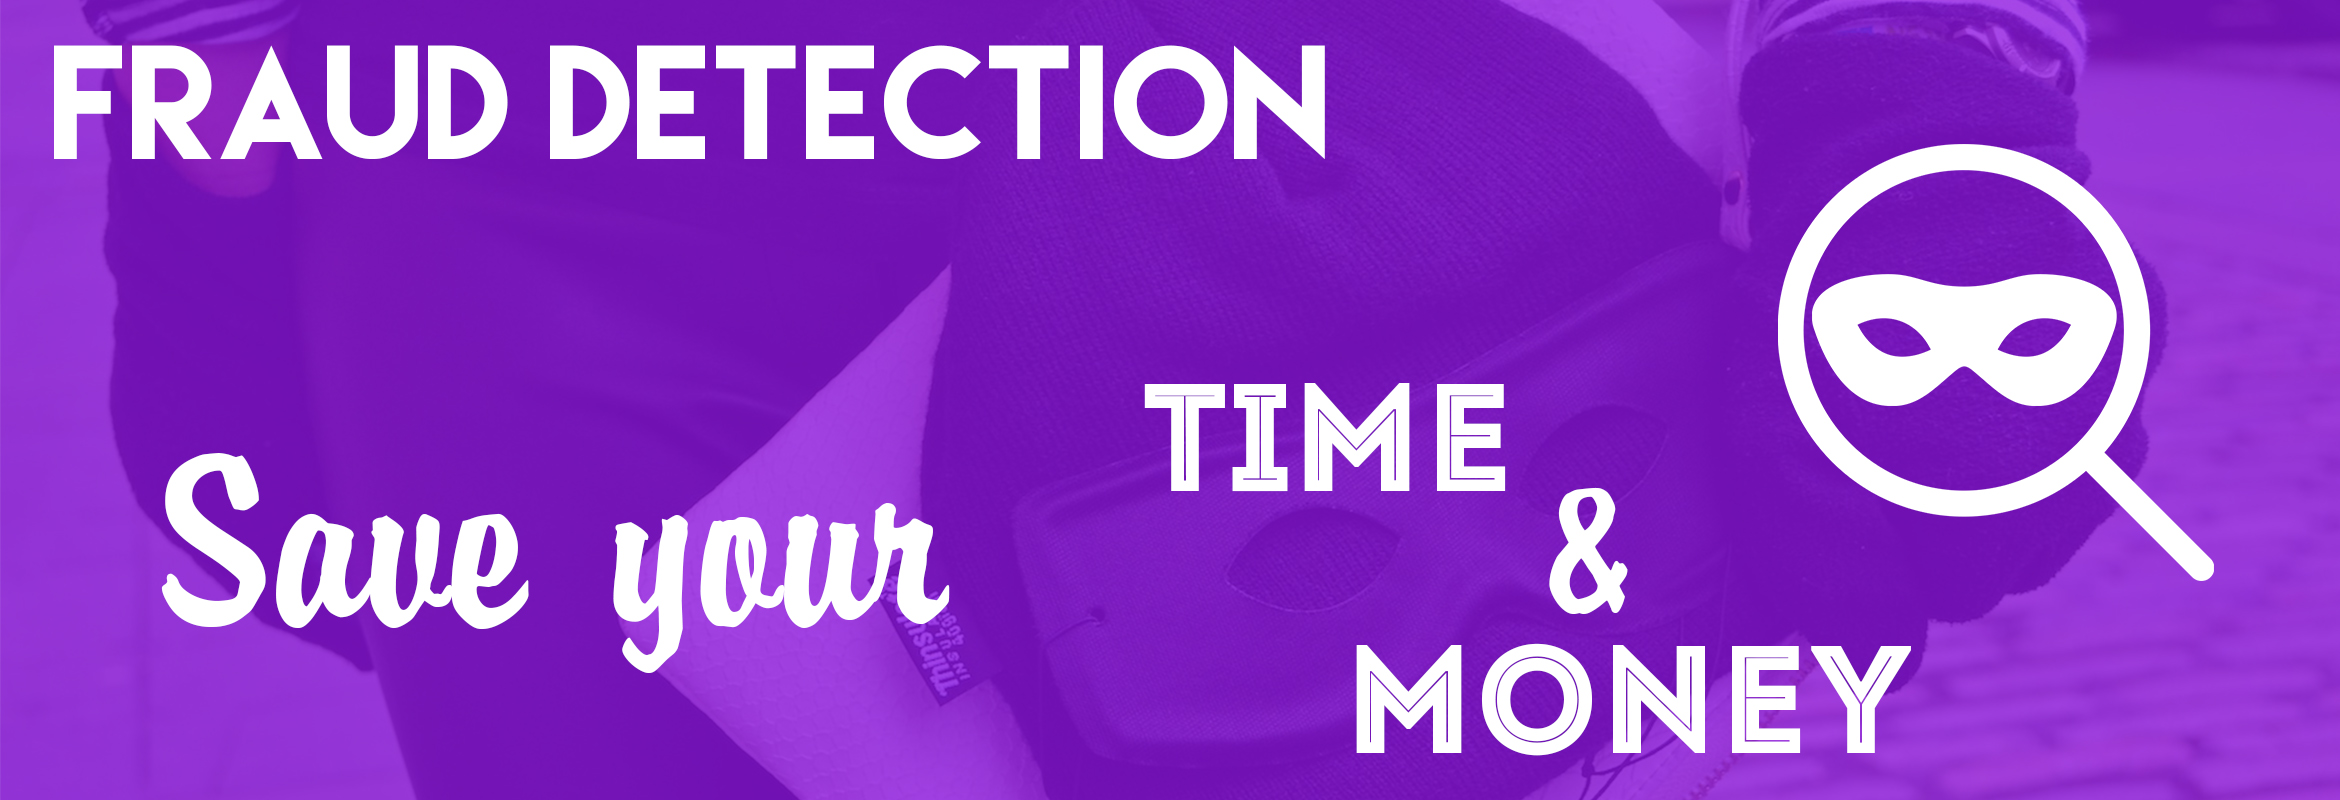 Fraud Detection: Killing Extension To Save Time And Money Without Losing Customers